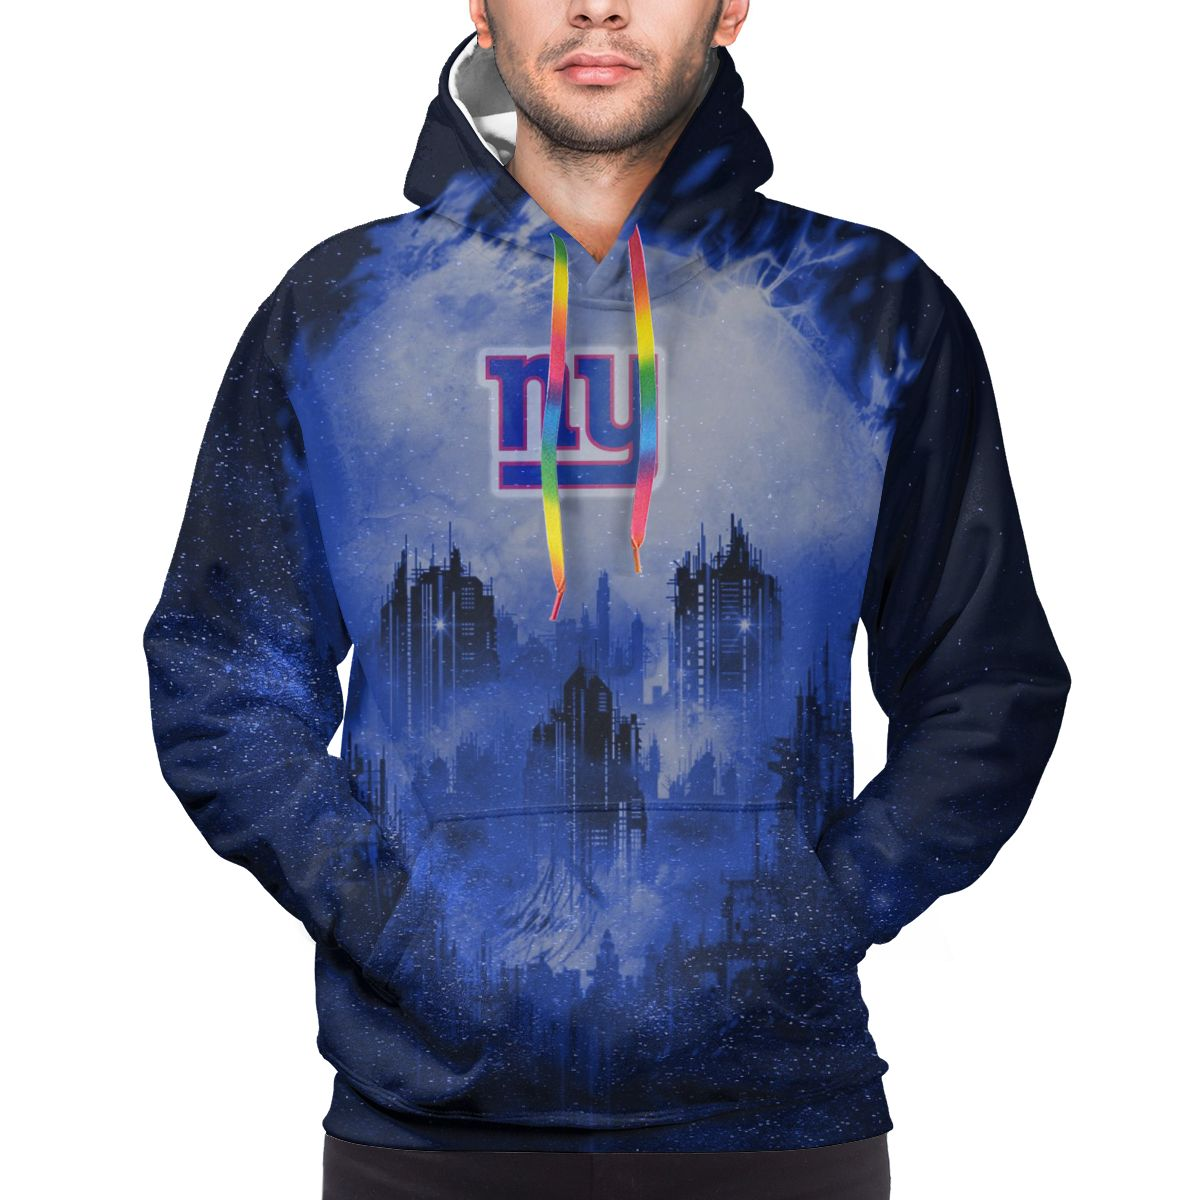 Armageddon Giants Logo Print Hoodies For Men Pullover Sweatshirt